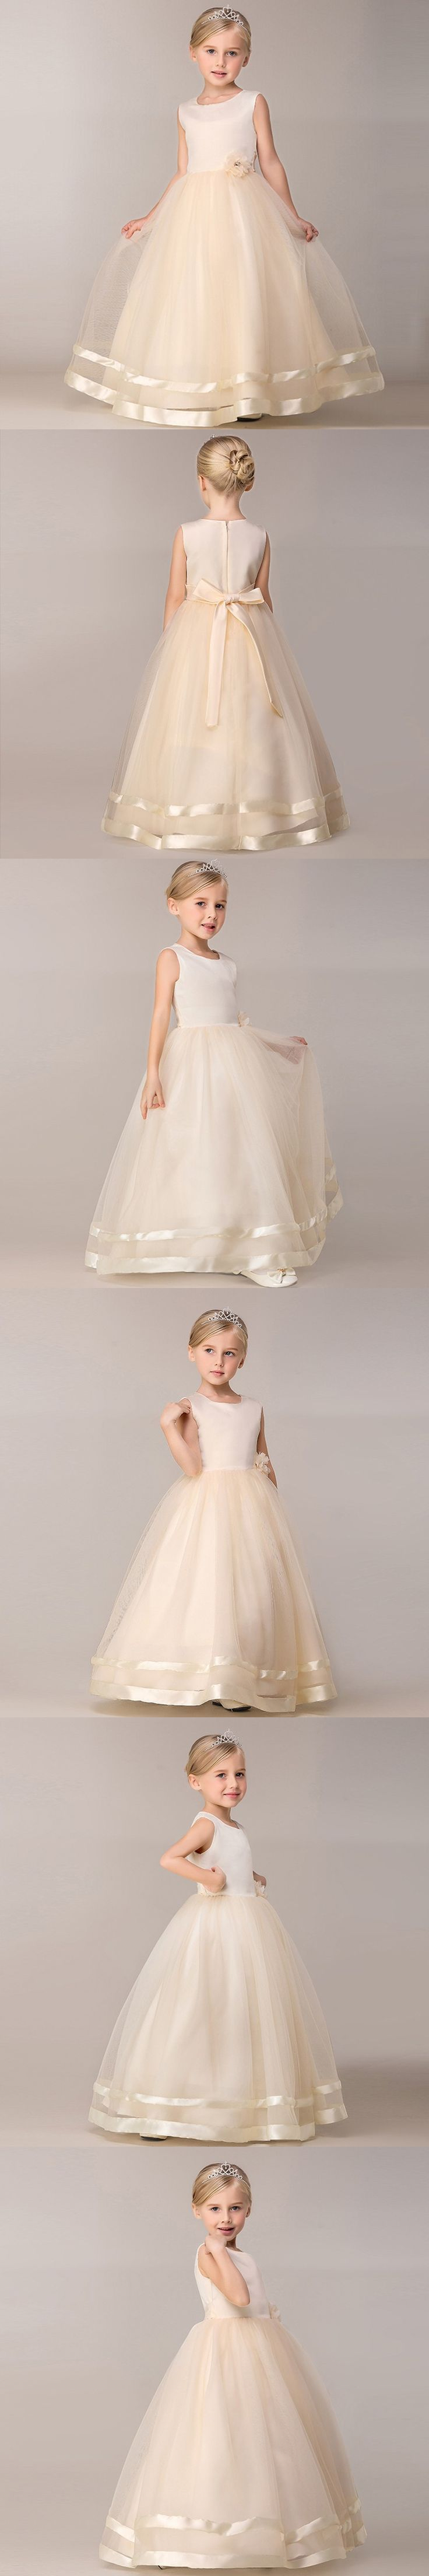 Elegant Princess Girl Kids Prom Party Dress Flower Wedding Christening Gown Teenager Tulle Dresses Clothes Girls 4 5 6 8 10 Year $17.17